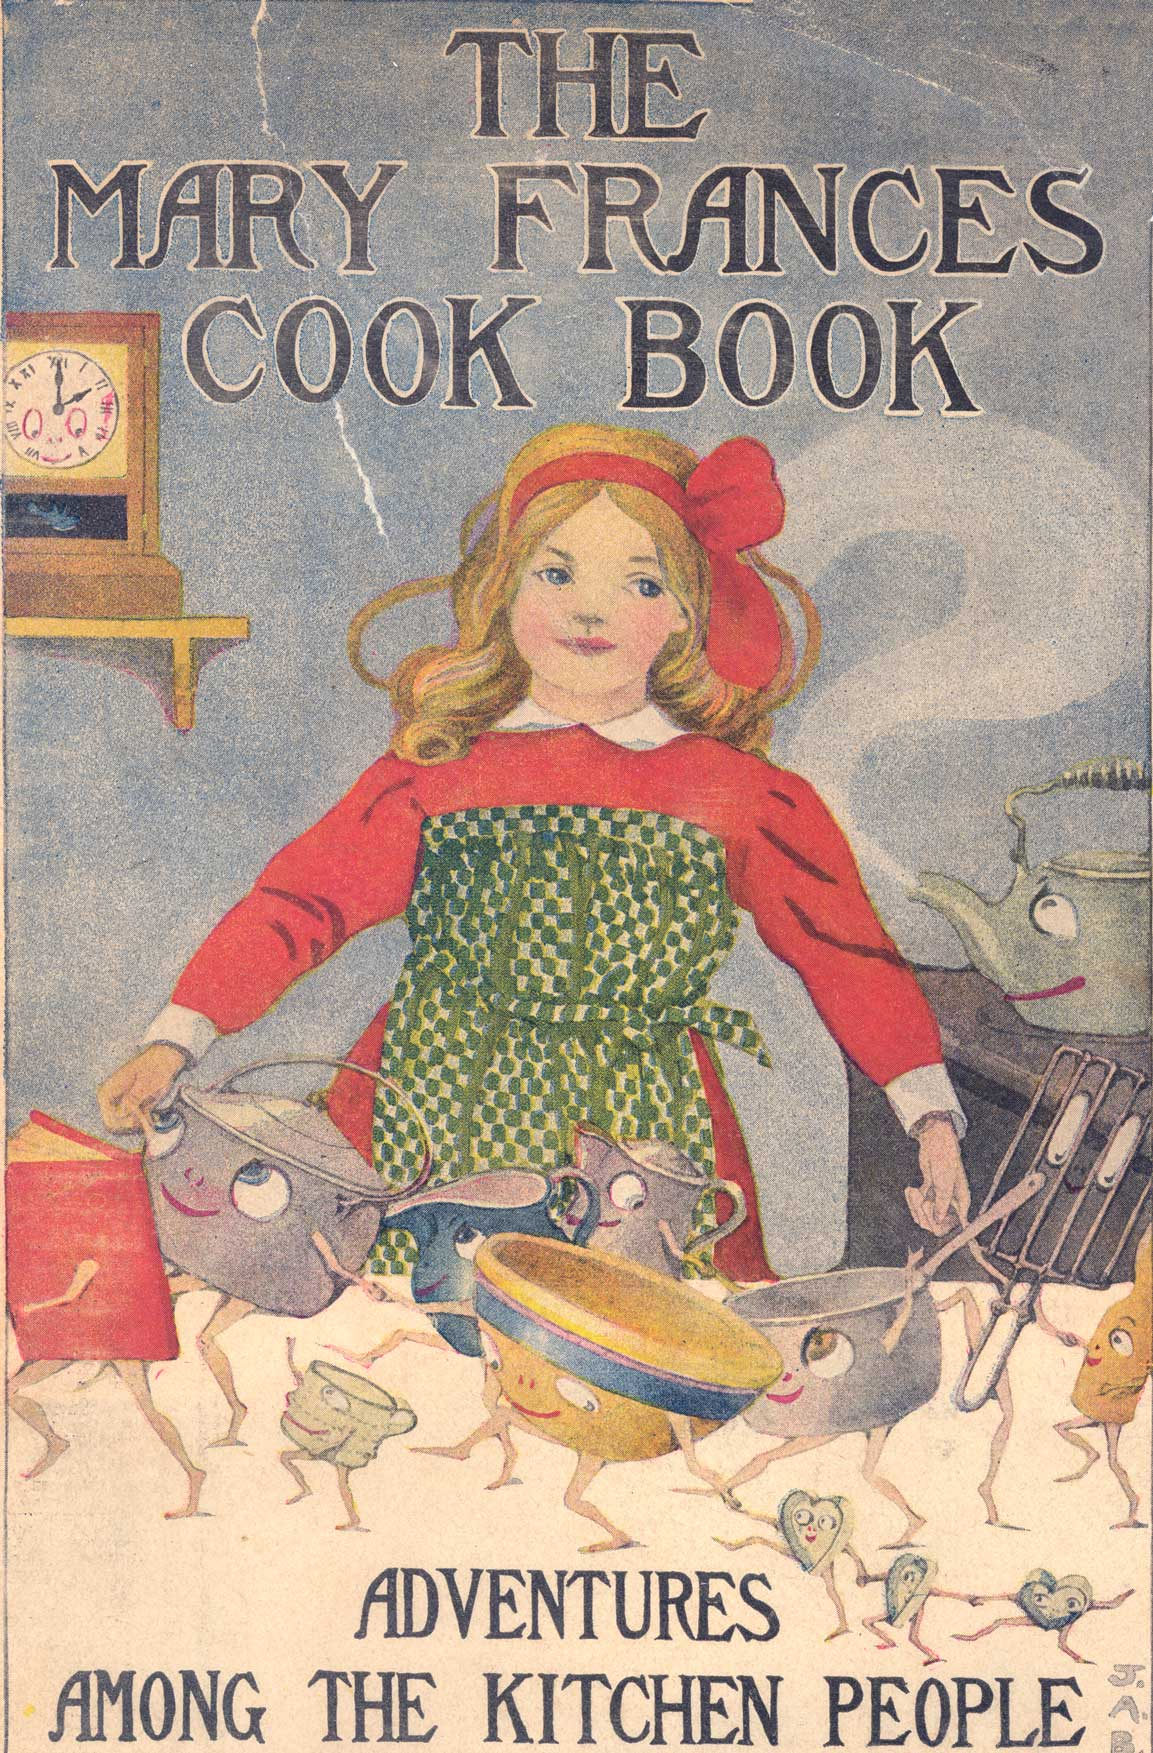 The Mary Frances cook book : or, Adventures among the kitchen people